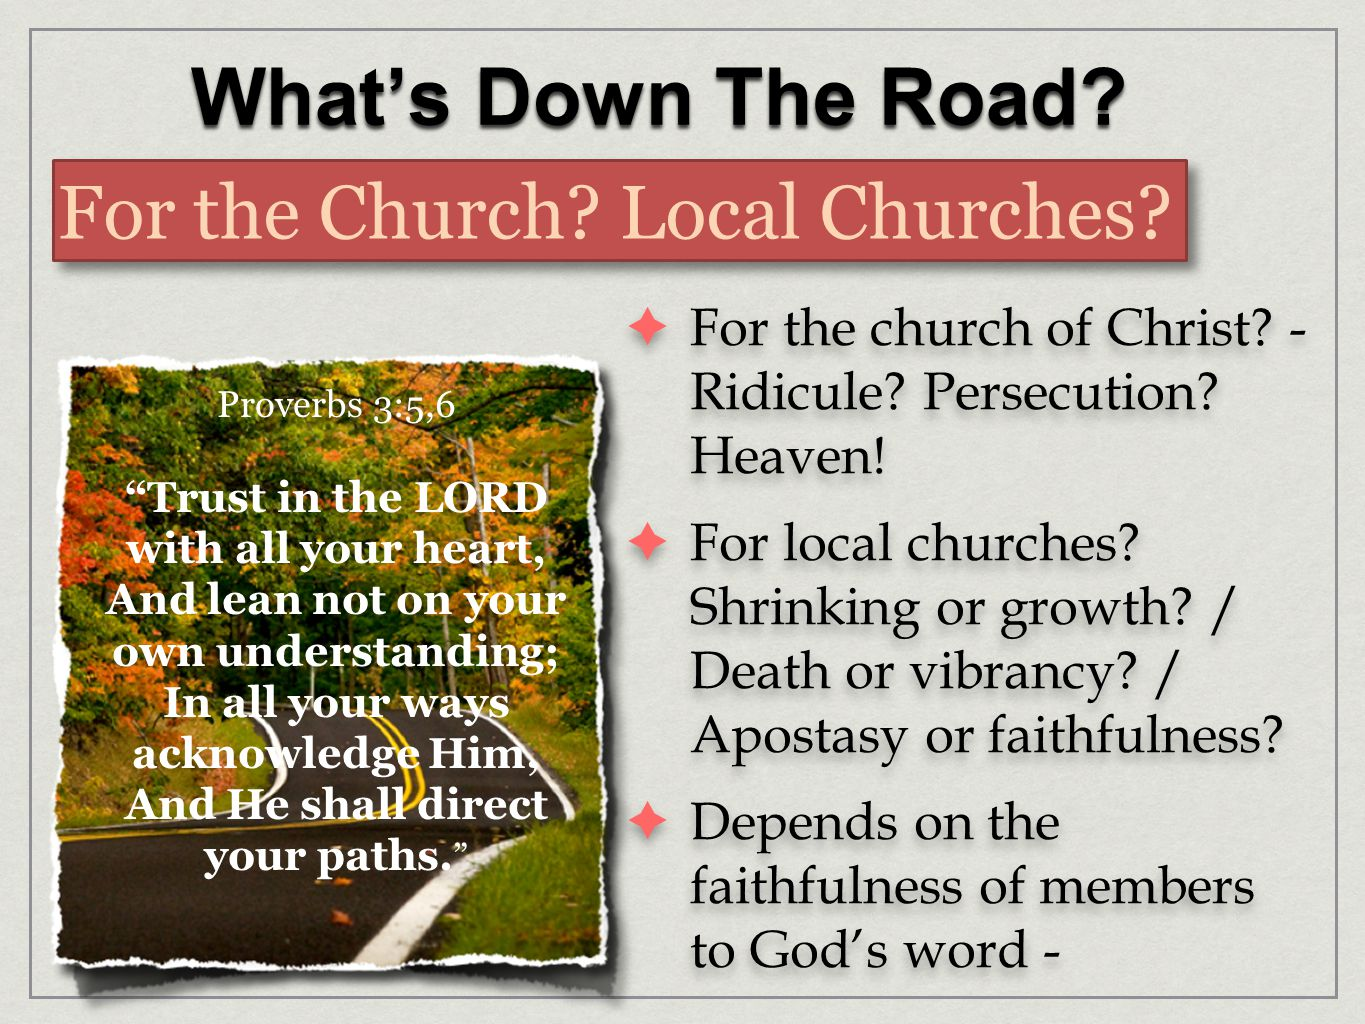 What's Down The Road. For the Church. Local Churches.